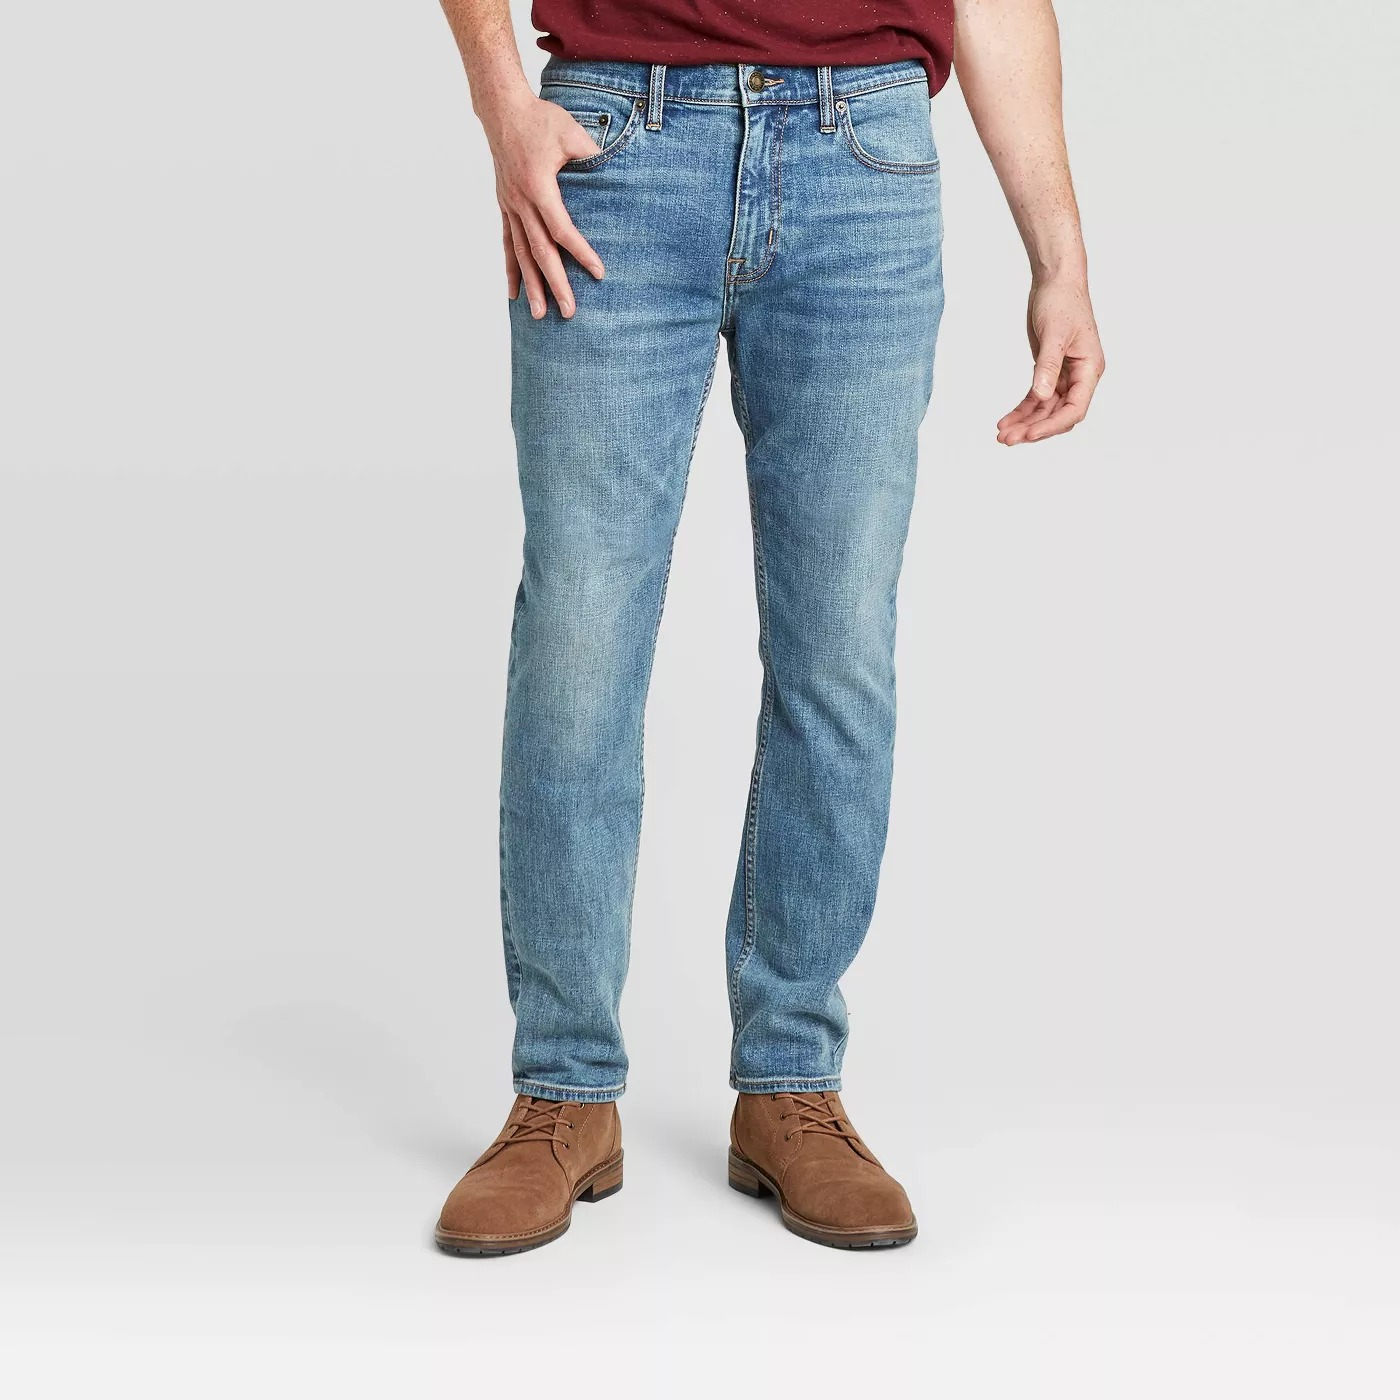 Goodfellow & Co Slim Fit Jeans, most comfortable jeans for men